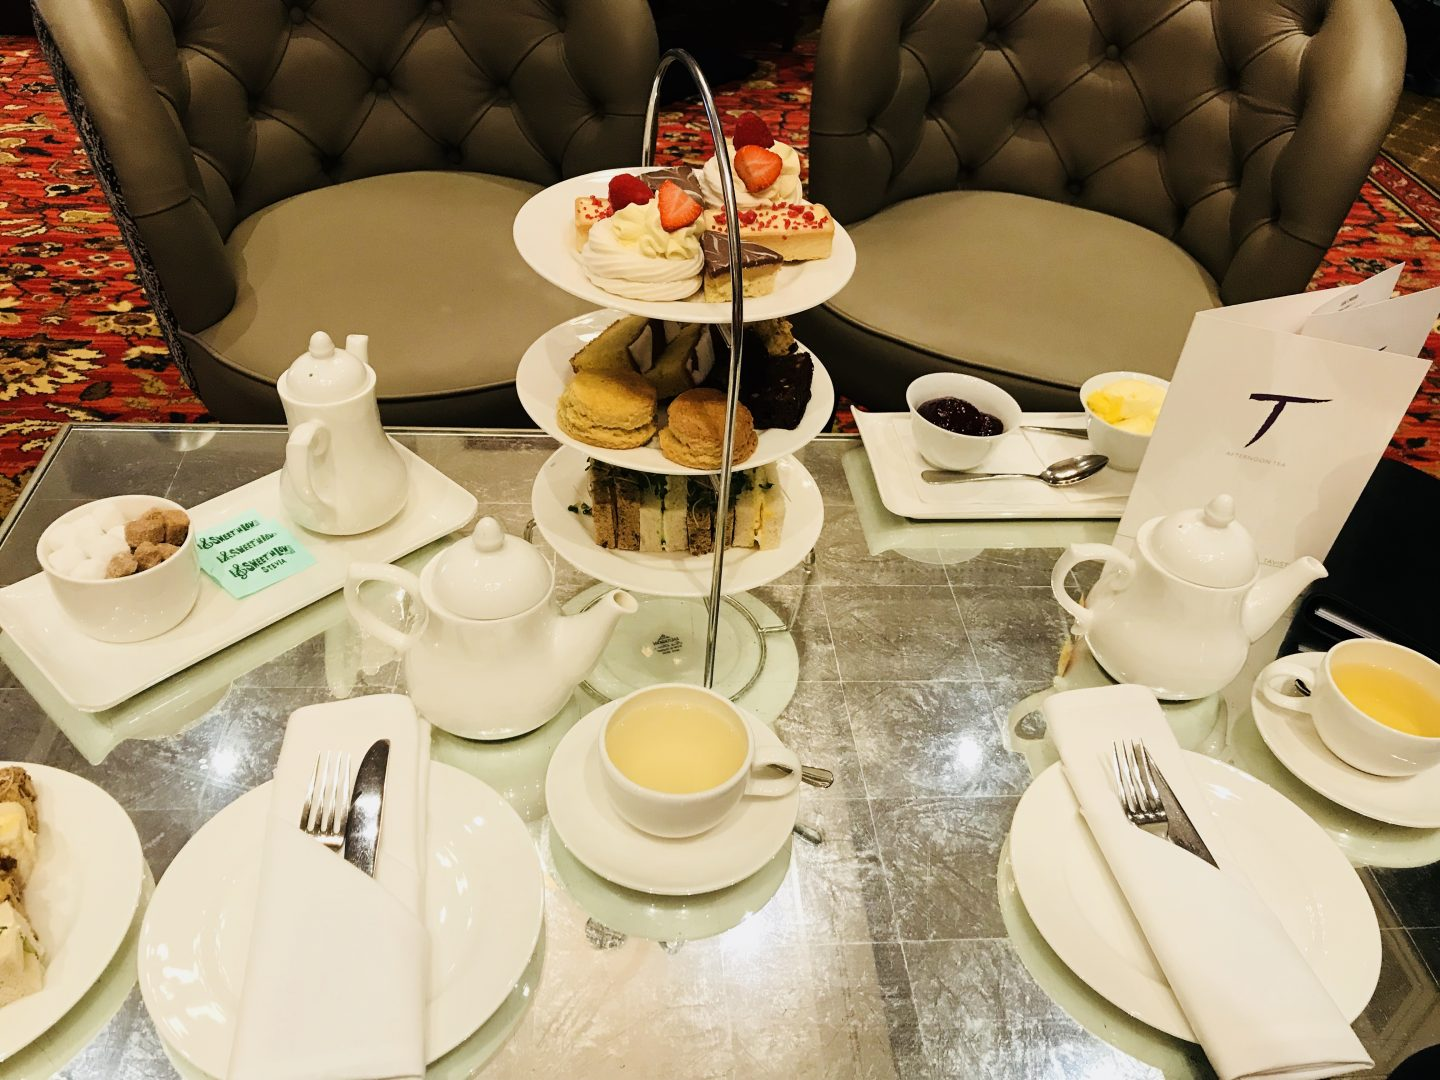 Duchess Anna Maria Afternoon Tea at The Woburn Hotel: Review